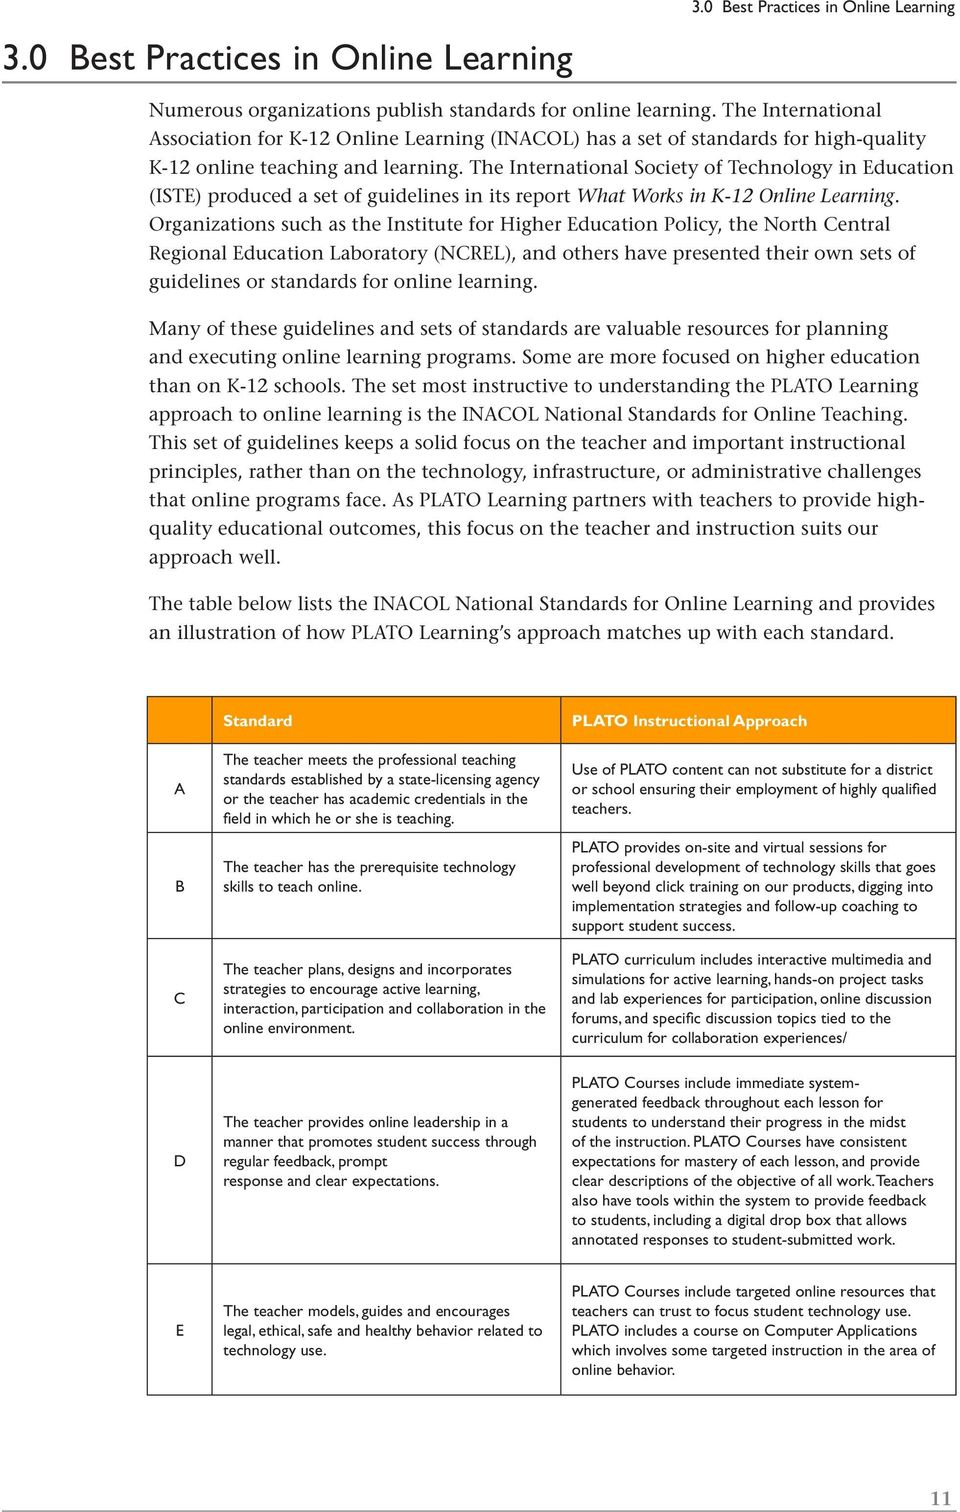 The International Society of Technology in Education (ISTE) produced a set of guidelines in its report What Works in K-12 Online Learning.